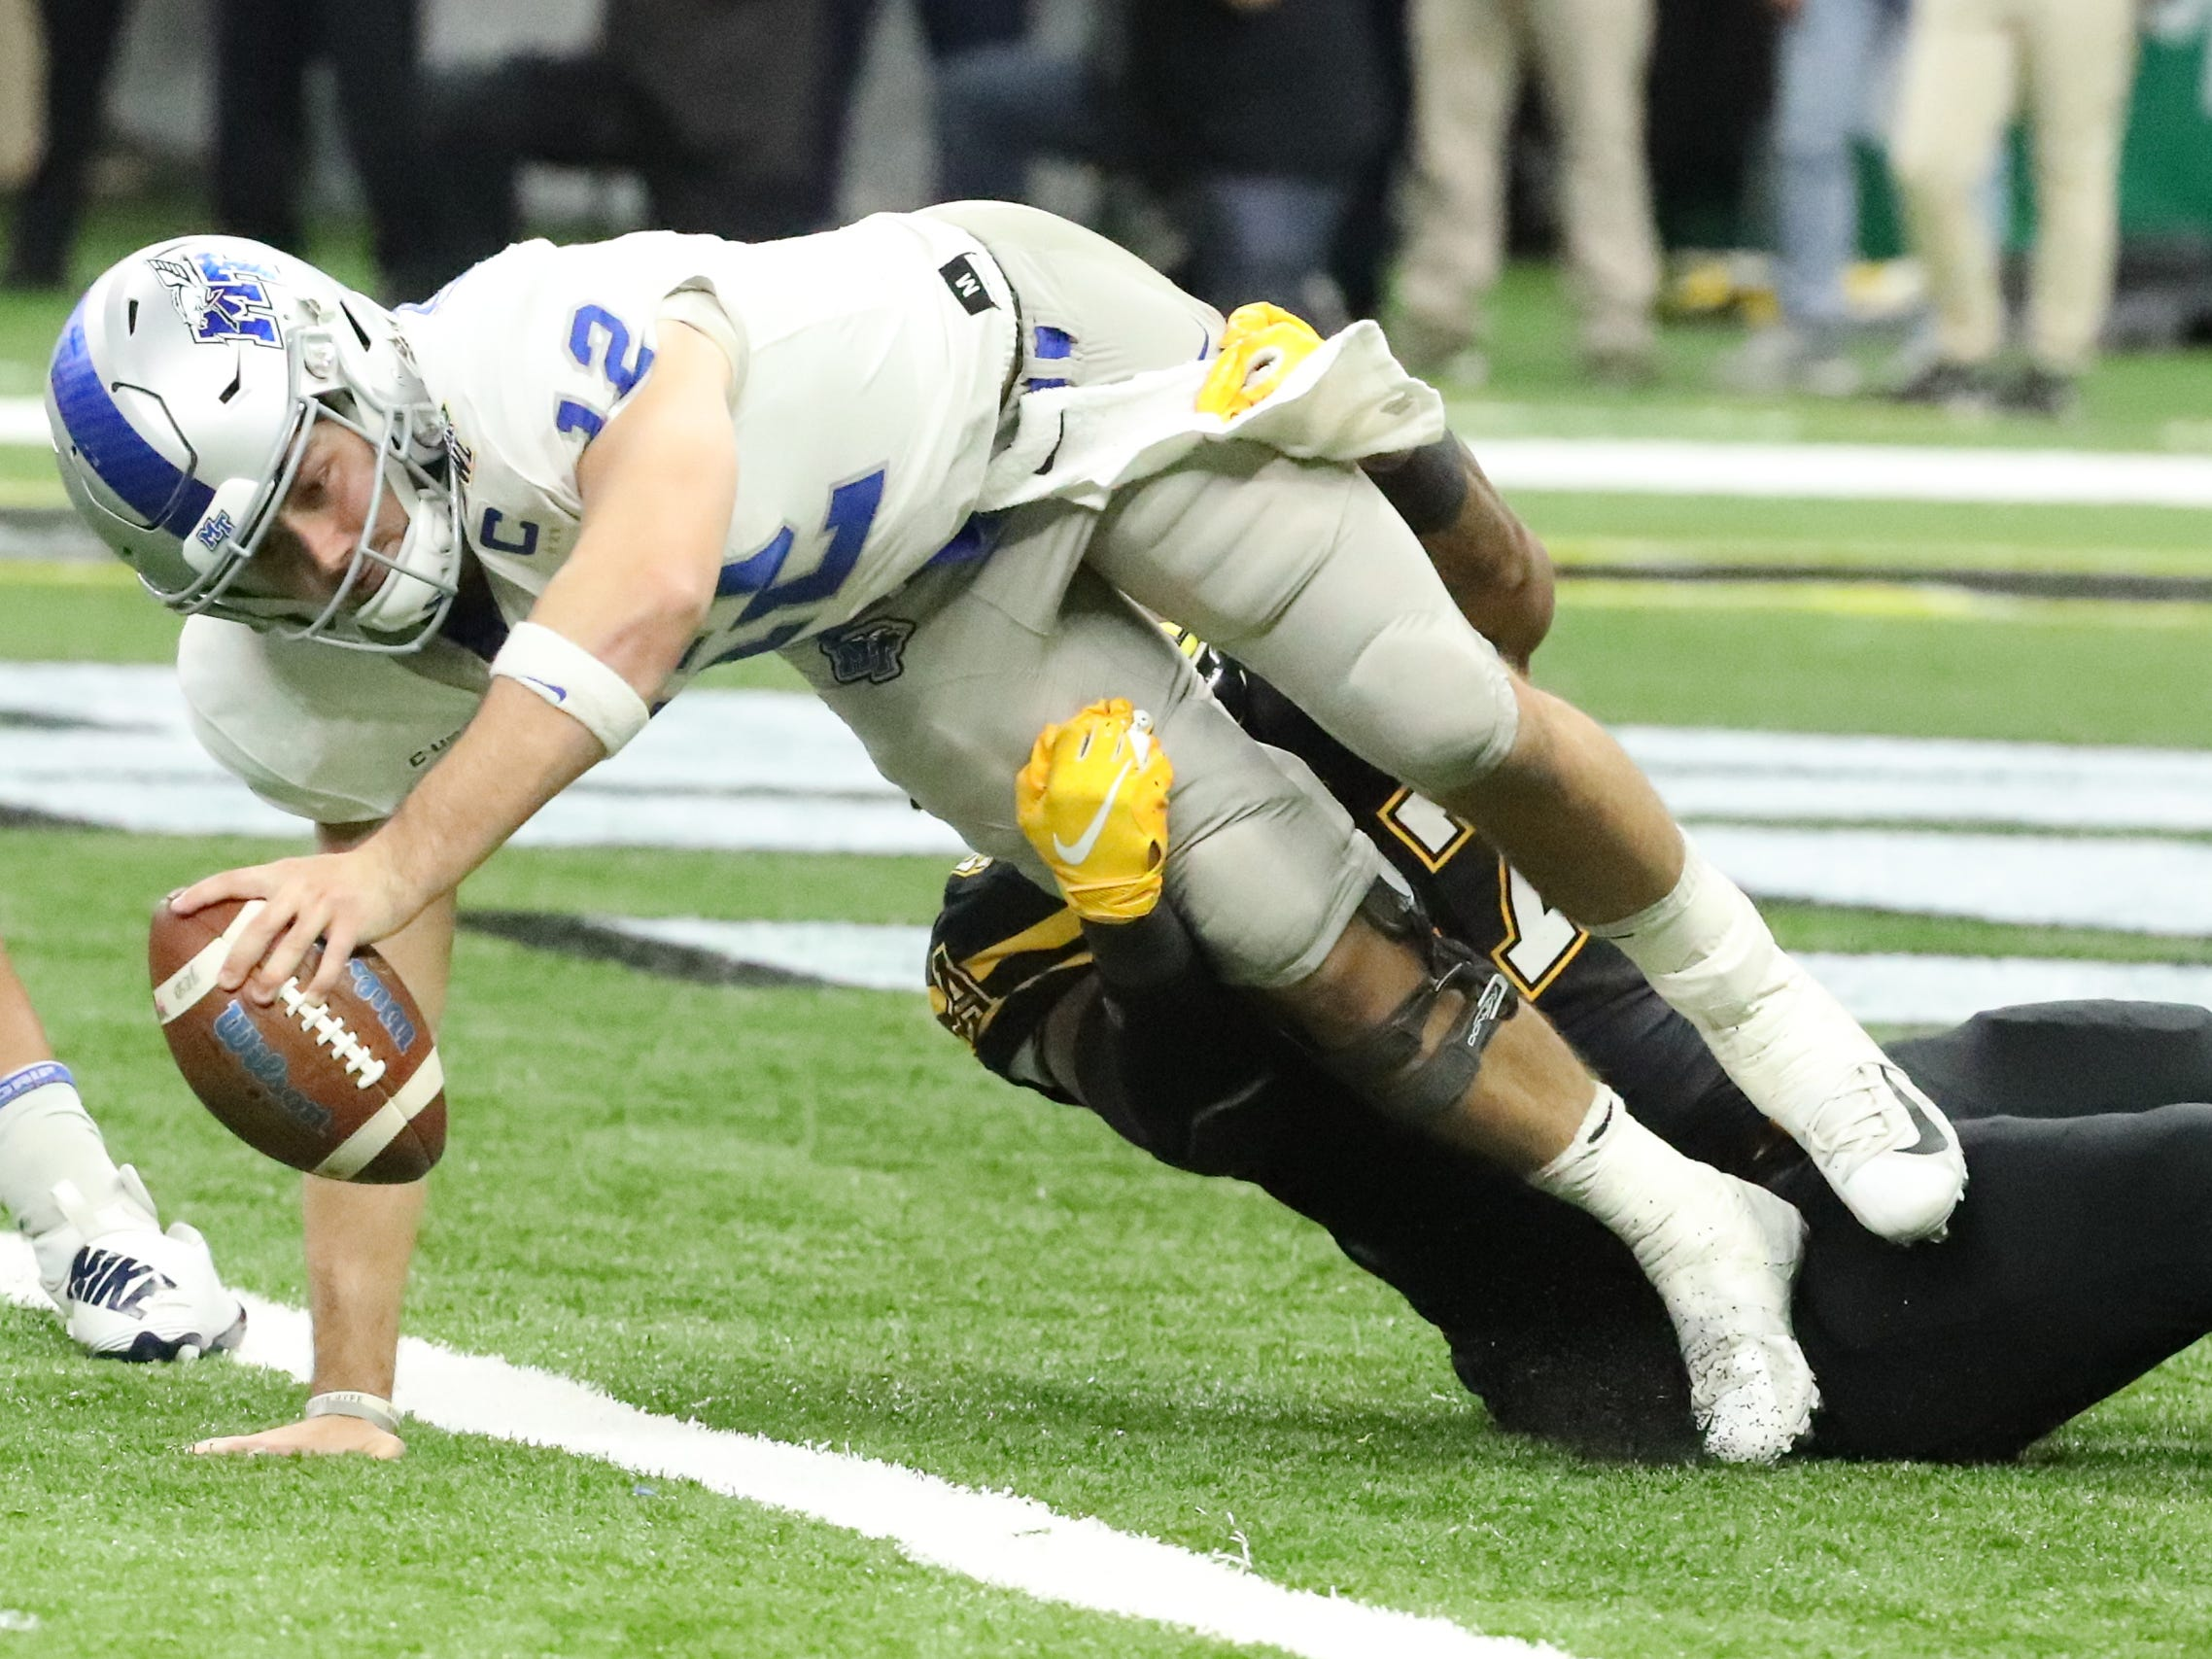 Middle Tennessee Blue Raiders quarterback Brent Stockstill (12) is sacked by Middle Tennessee Blue Raiders wide receiver Reginald Henderson (47) on Saturday, Dec. 15, 2018 during the New Orleans Bowl.